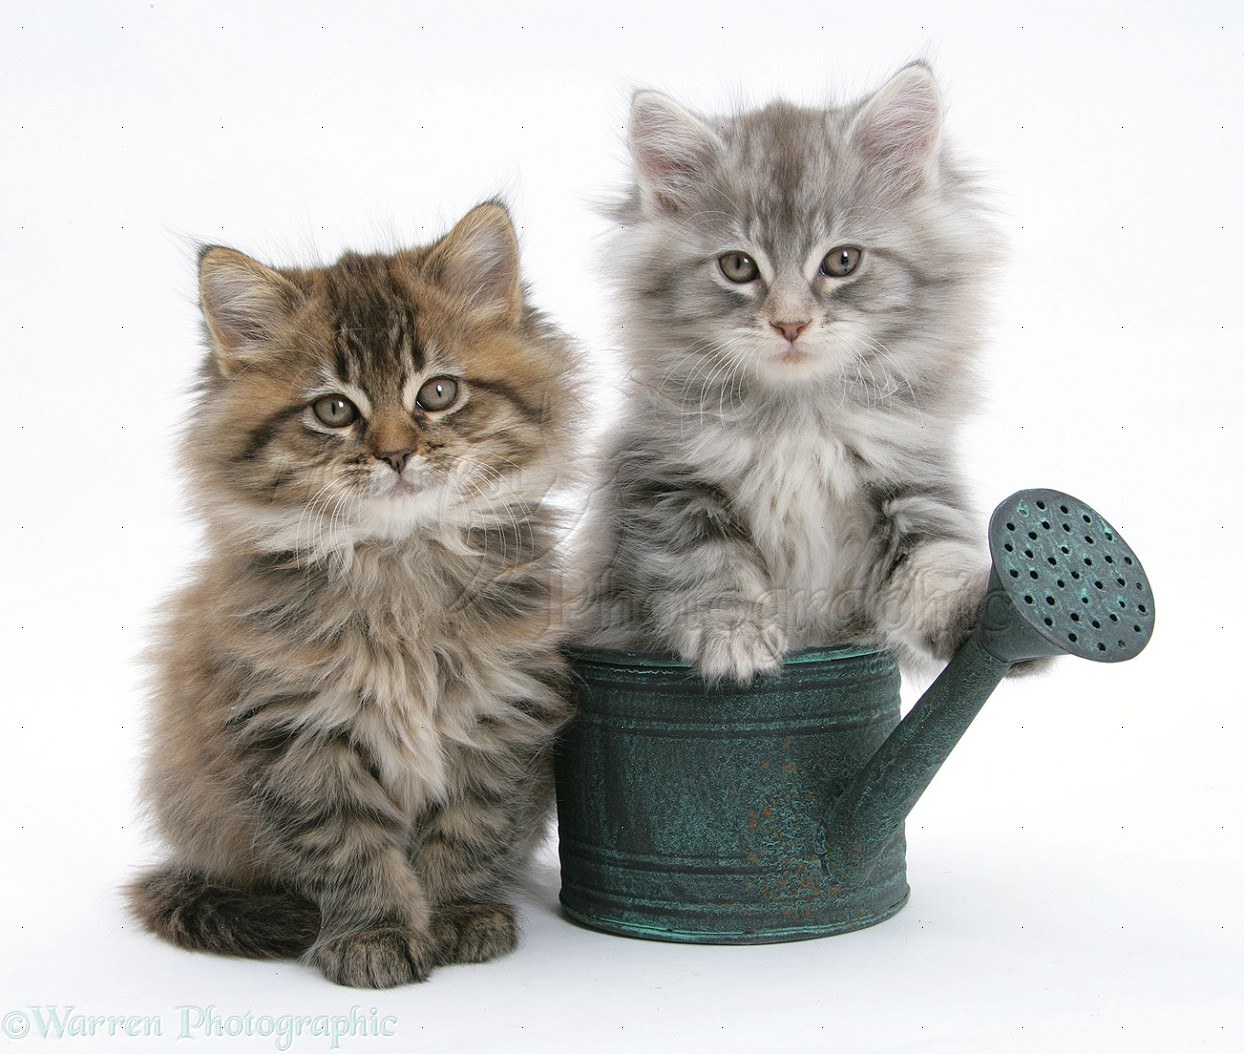 Maine Coon kittens in a small